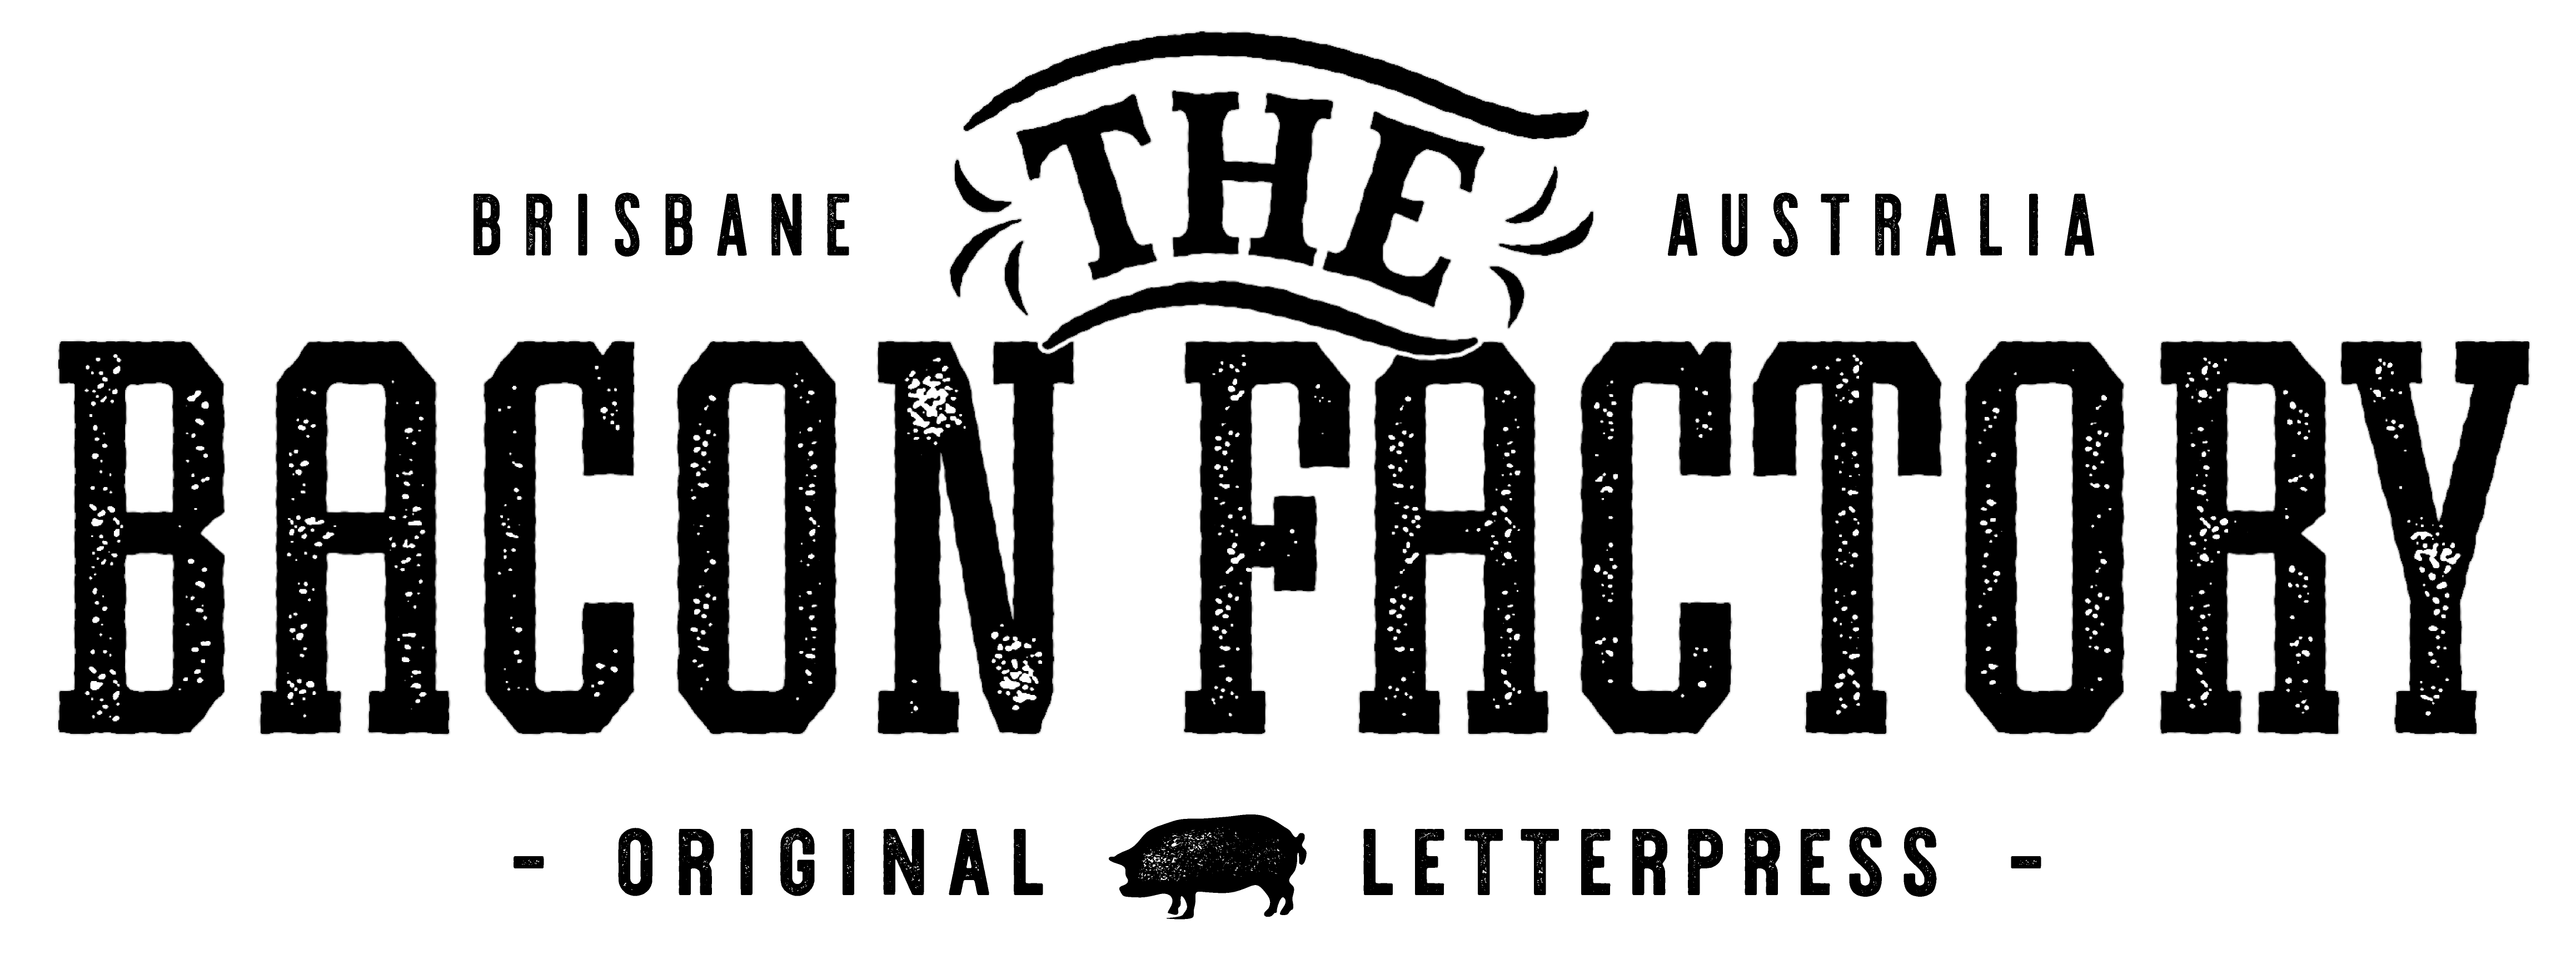 The Bacon Factory – Letterpress Co-sharing